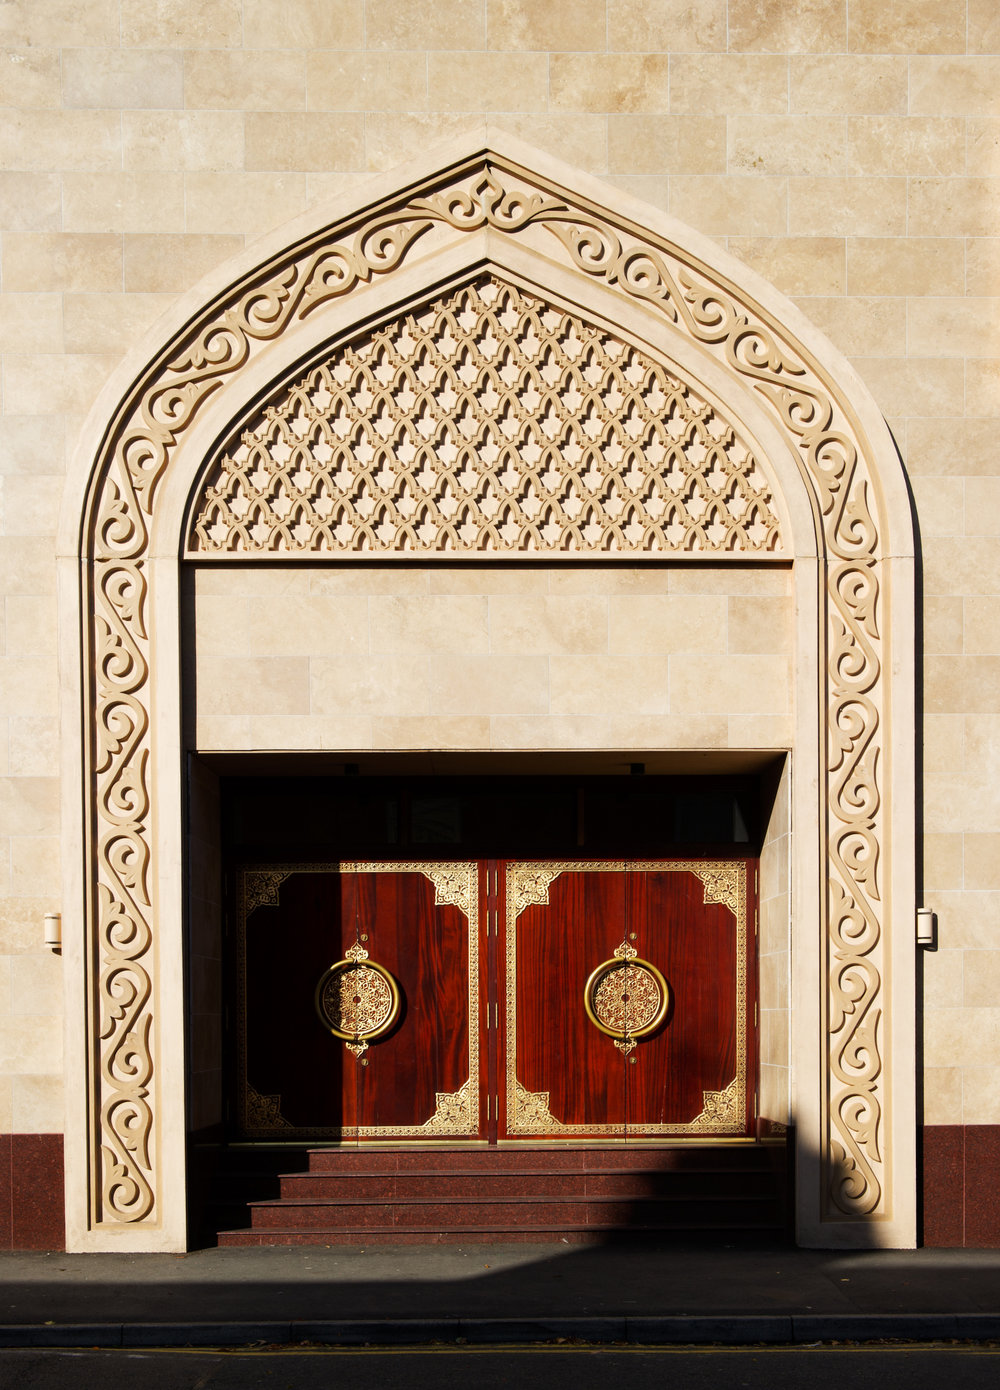 The arched doorway of the Jame Mosque, Leicester